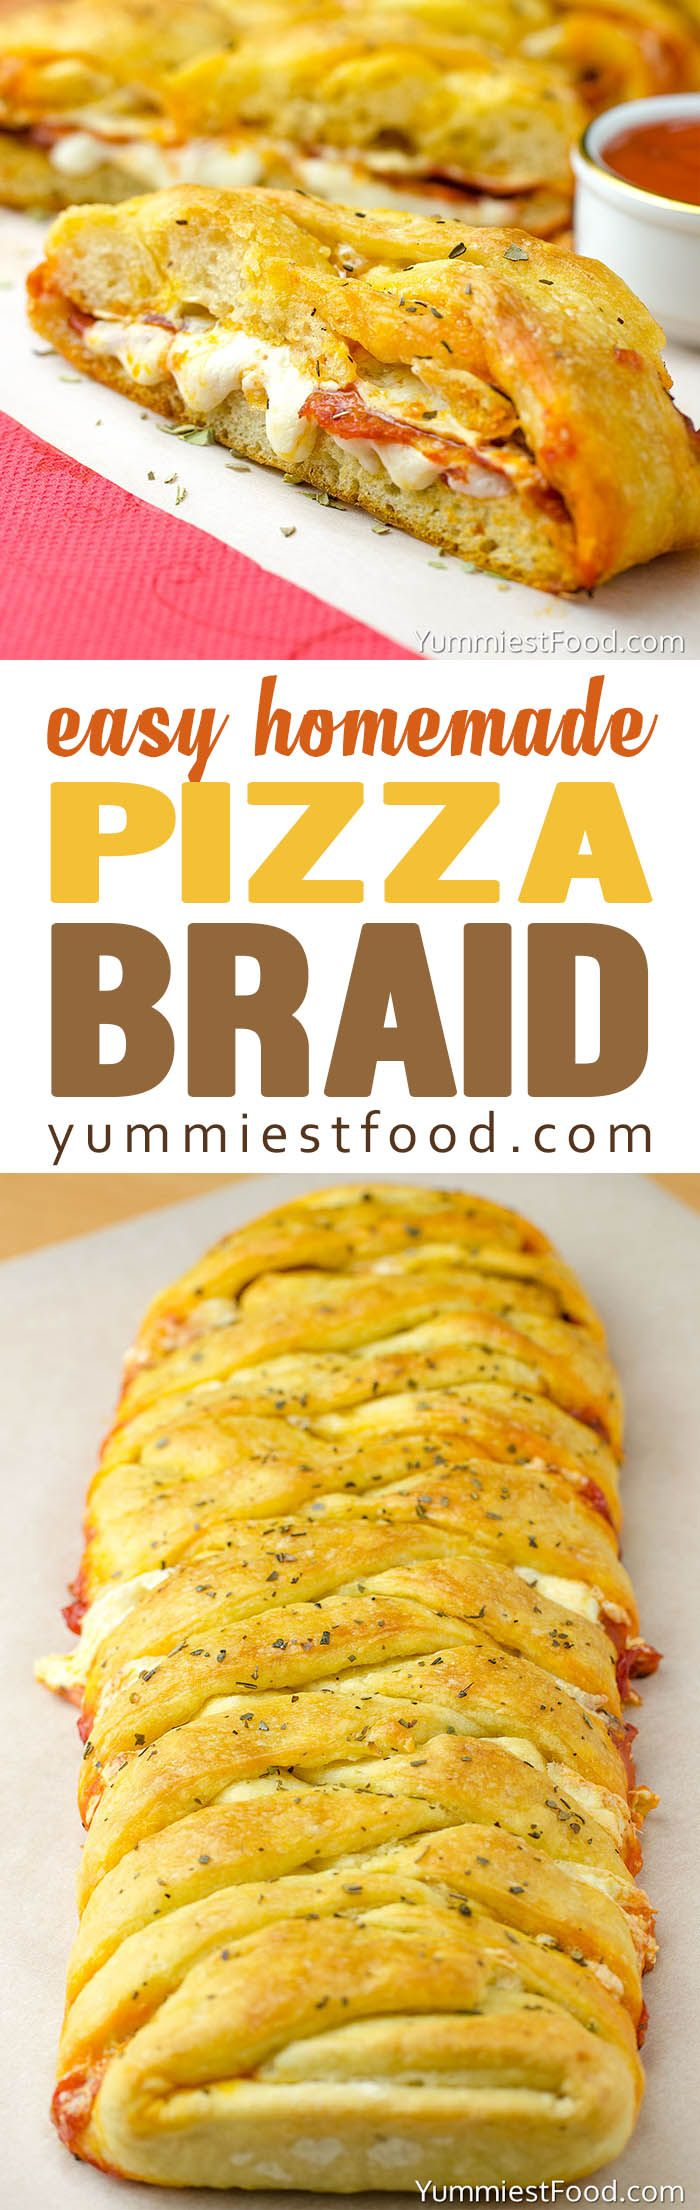 Easy Homemade Pizza Braid – is enjoyable for the entire family. This homemade pizza braid is so quick, easy and delicious you will want to make it again!